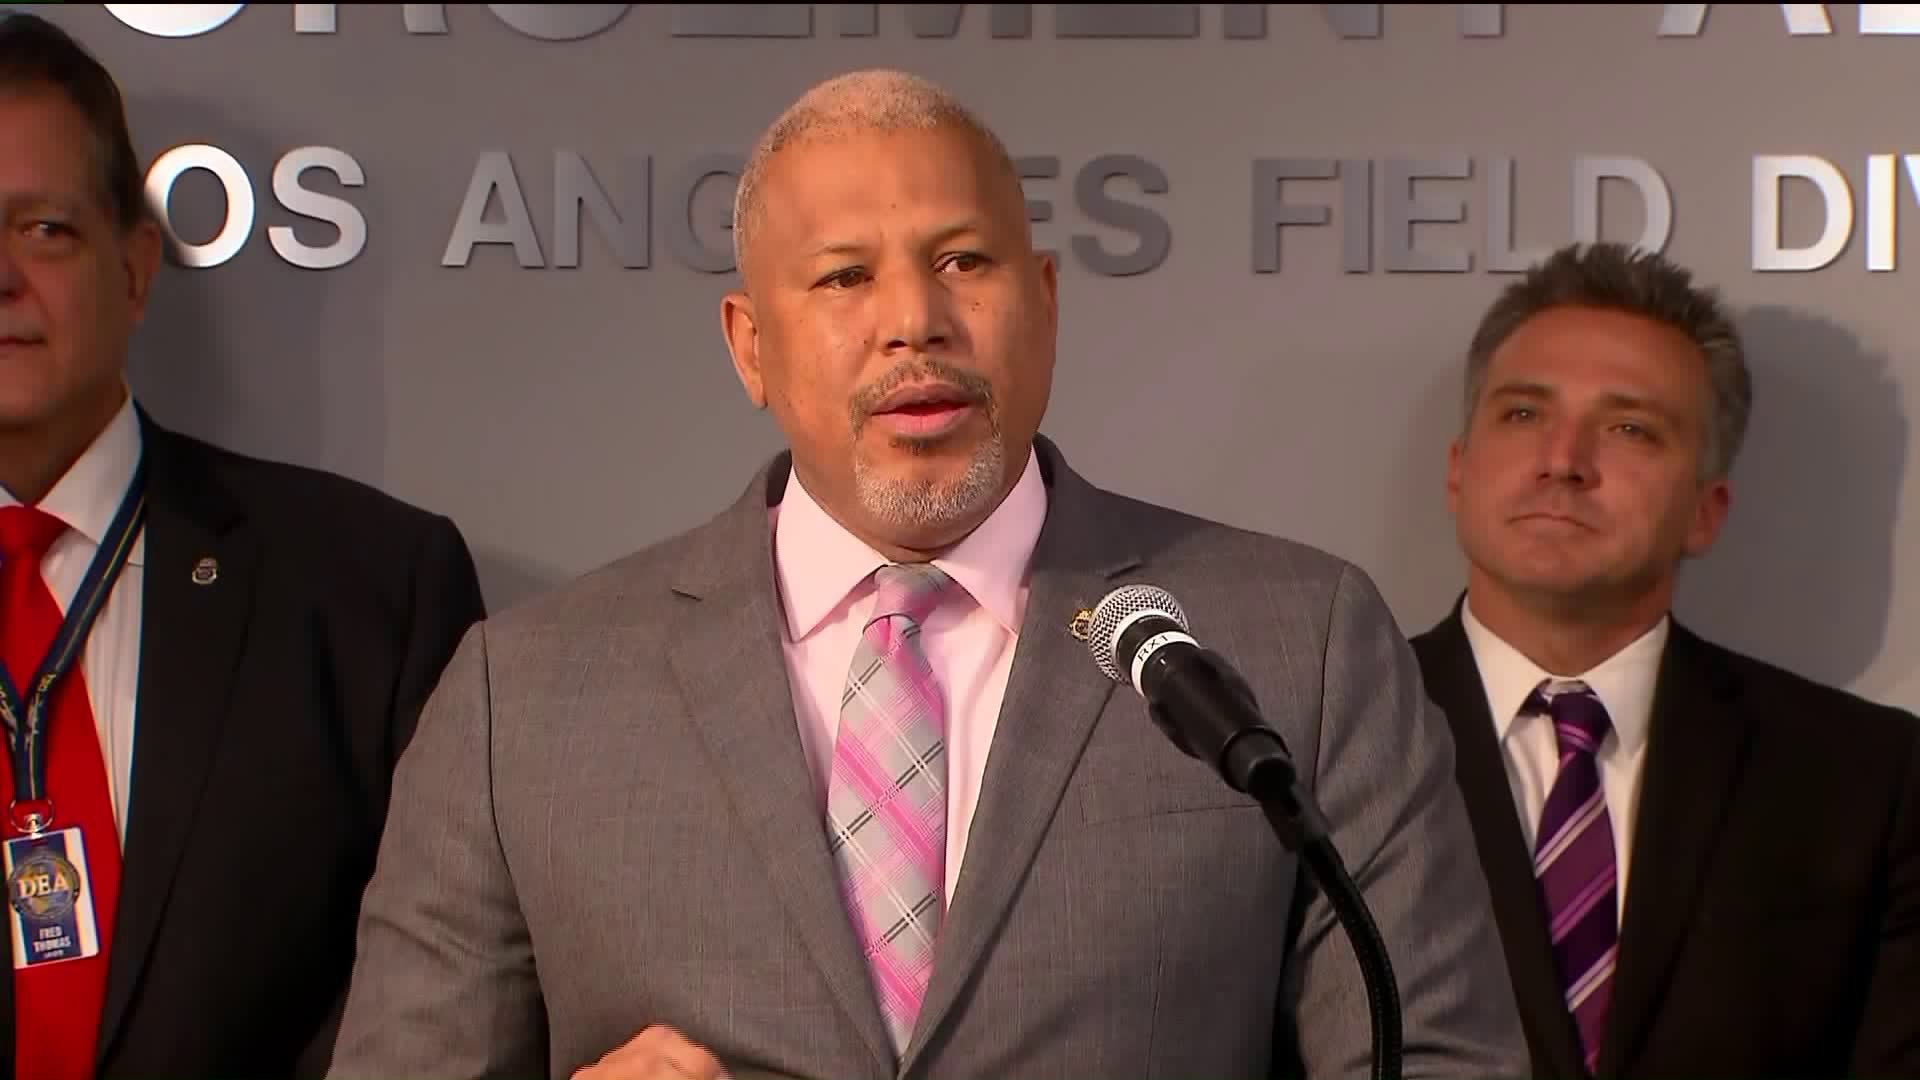 DEA Associate Special Agent in Charge Daniel Comeaux speaks at a news conference on Dec. 18, 2018. (Credit: KTLA)